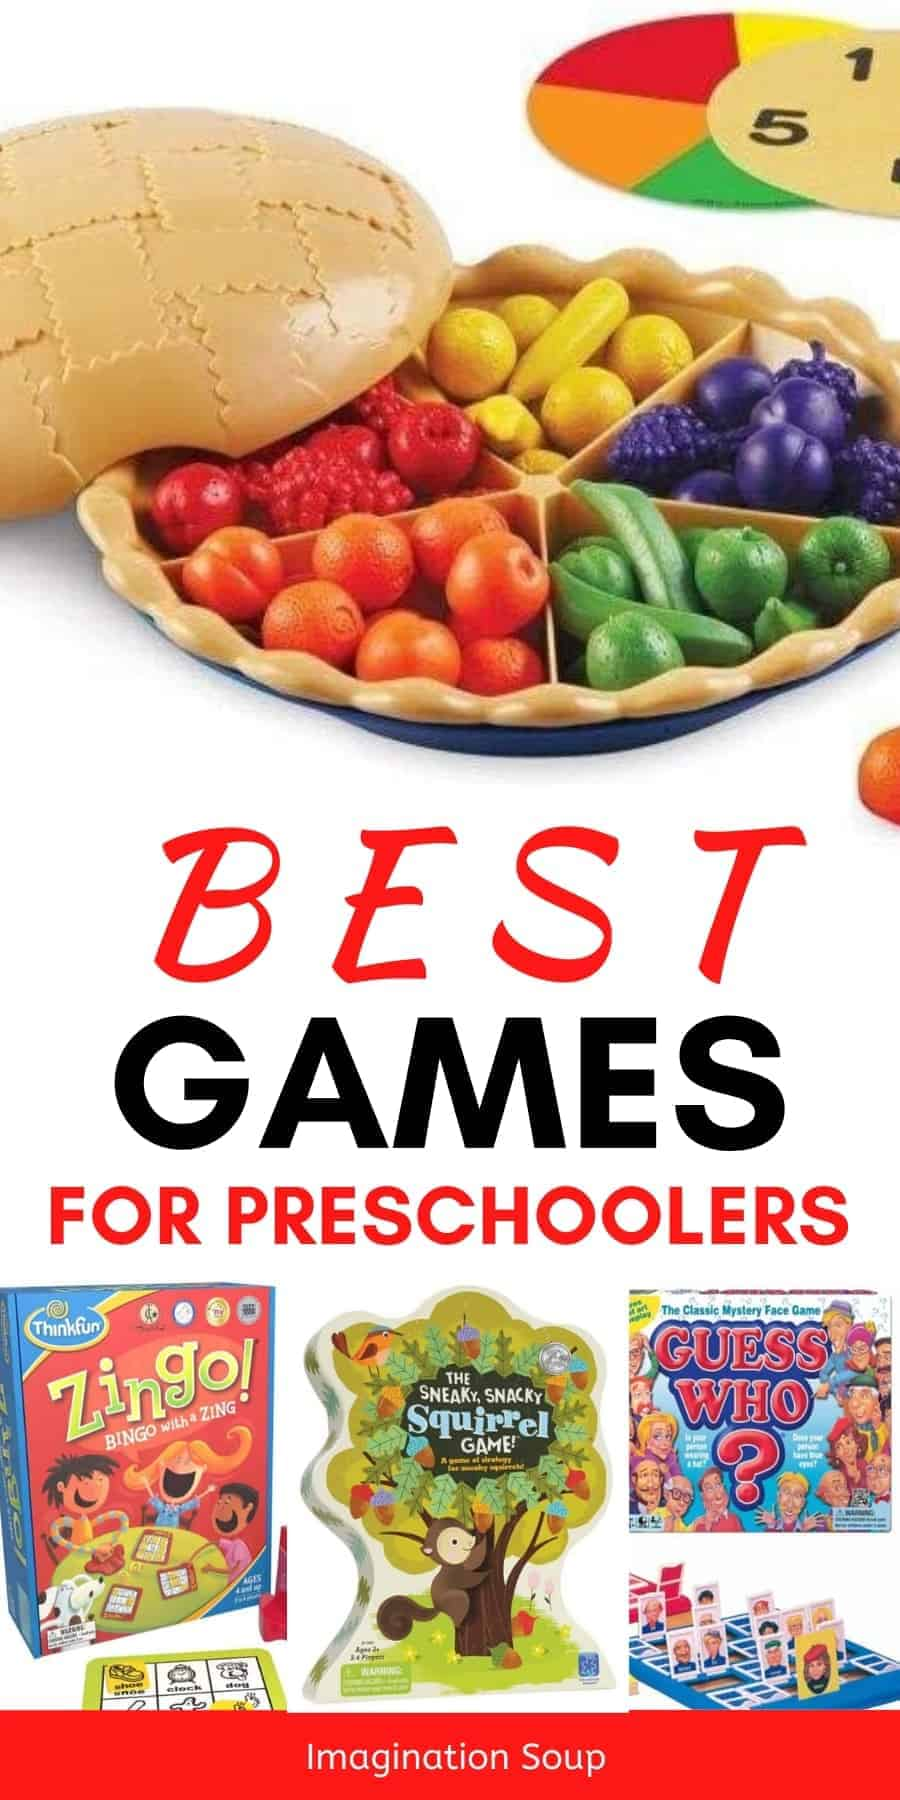 best games for preschoolers ages 3, 4, 5